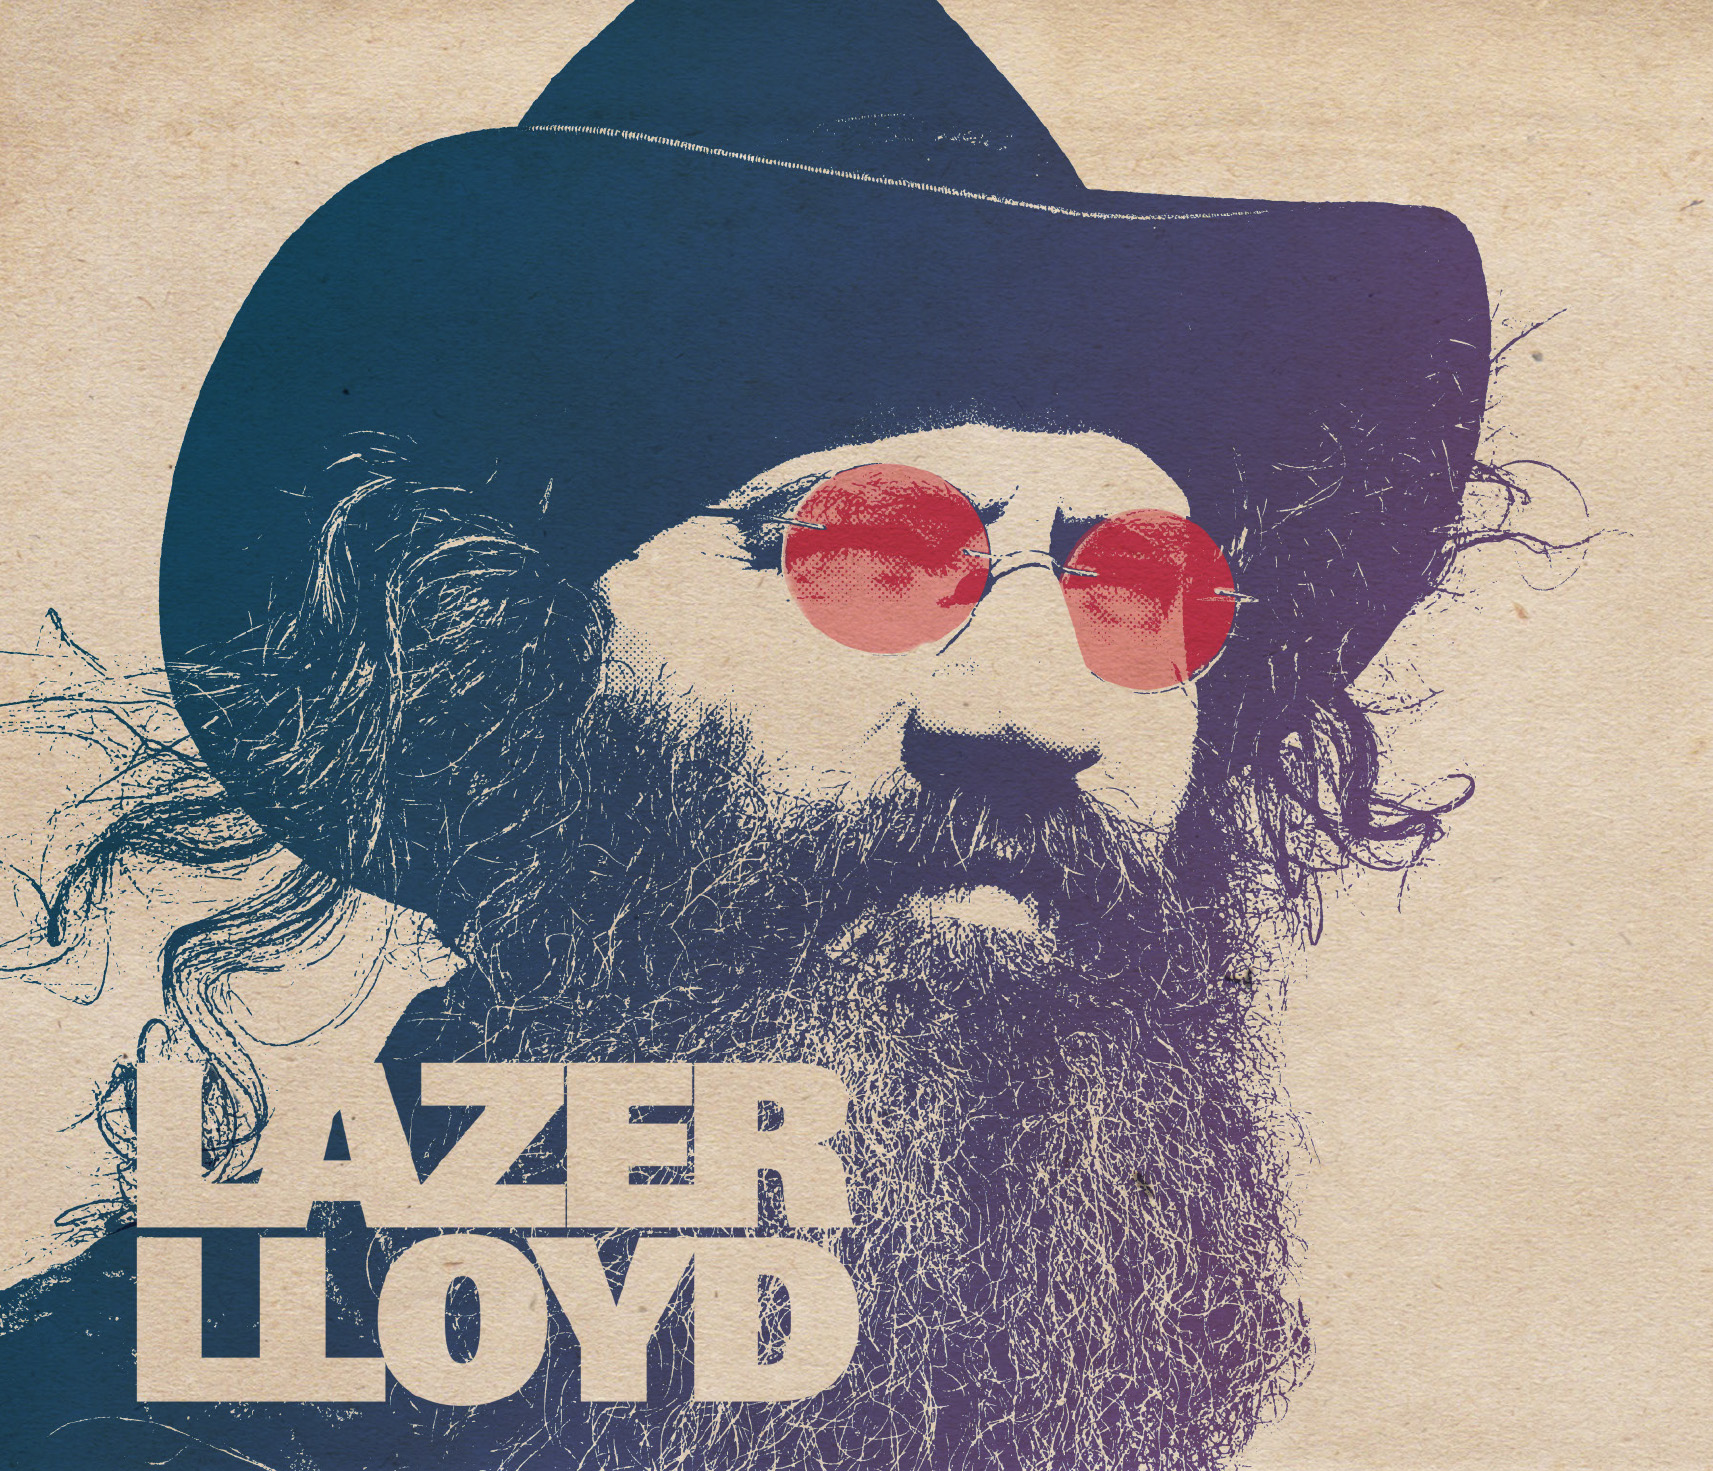 """REVIEWS HERE  http://www.lotsofloverecords.com   CHARTS (12 weeks on the RMR Blues chart, 5 weeks in the top ten)  #3  Lazer Lloyd - RMR Blues/Rock Top 200 CD's of 2015 #4  Lazer Lloyd - RMR Blues Peak Position #2  Blues Rock Single of 2015 """"Burning Thunder"""" #6  Blues Rock Single of 2015 """"Broken Dreams"""""""